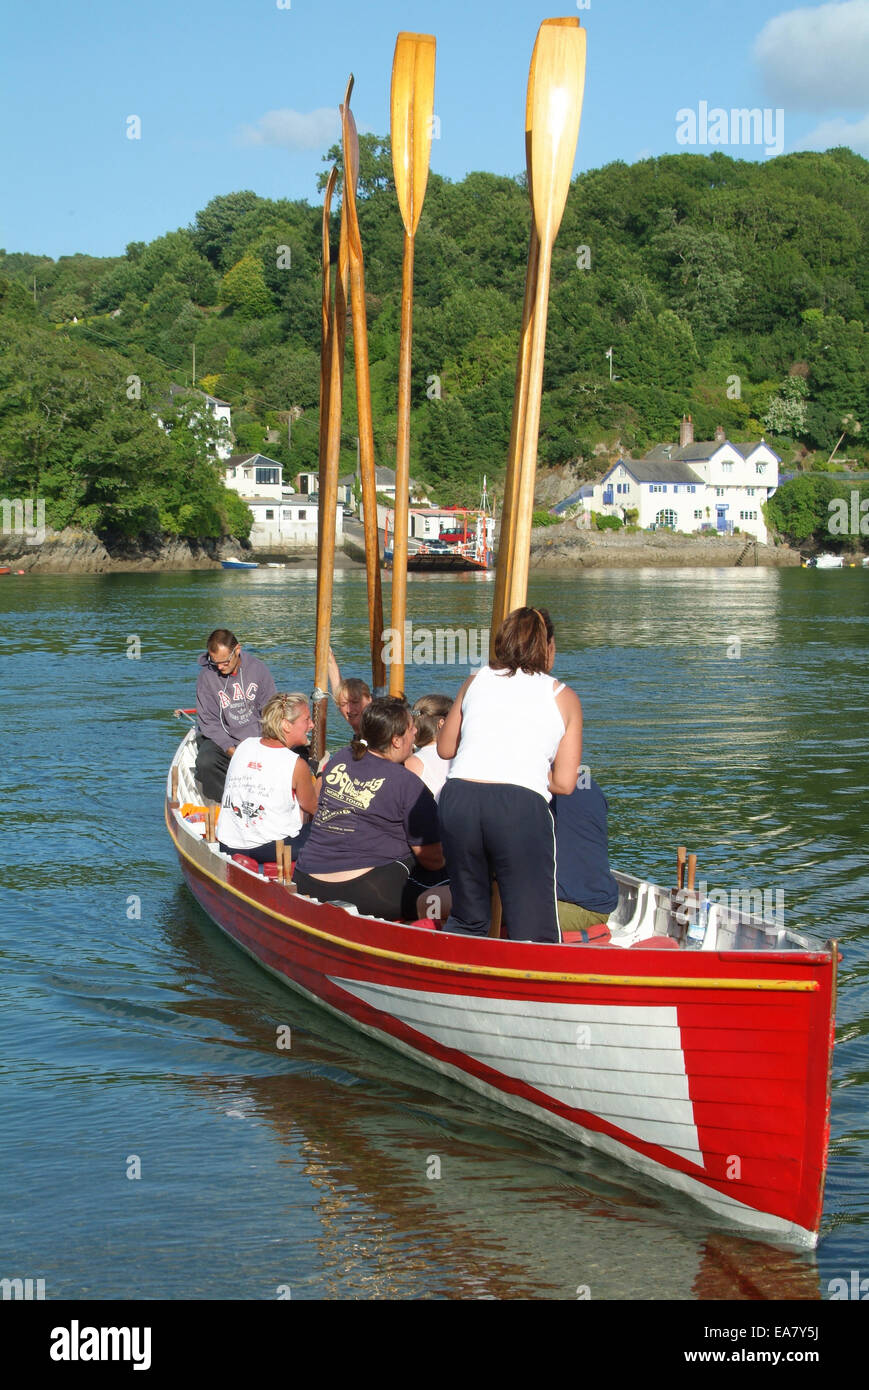 Gig with rowers holding oars upright on the River Fowey opposite Bodinnick landing at Fowey Restormel Mid Cornwall - Stock Image